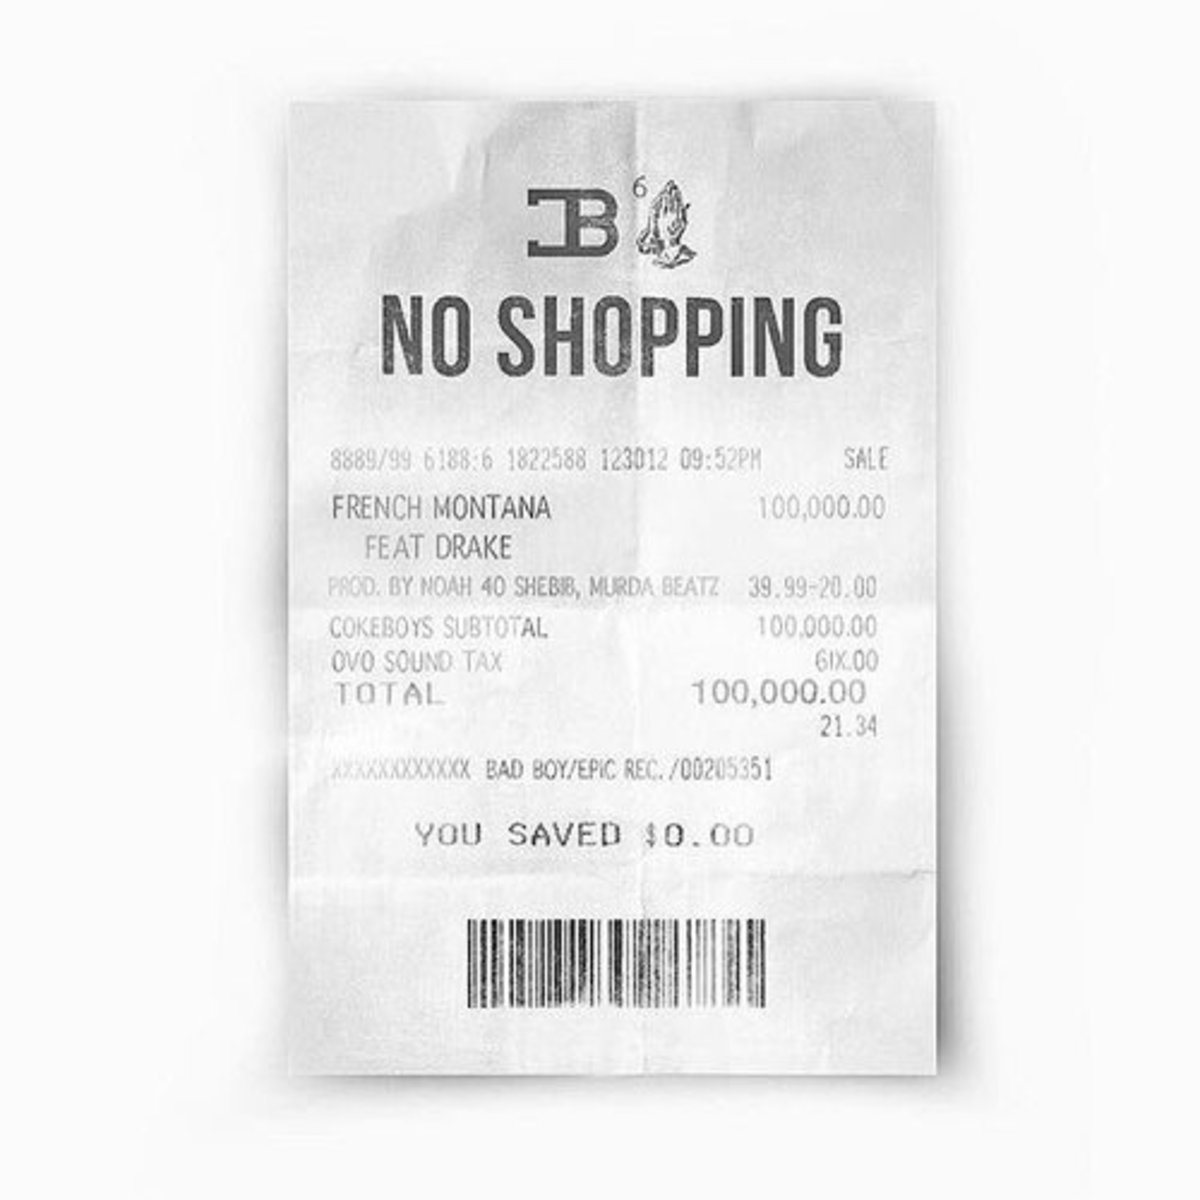 french-montana-no-shopping.jpg